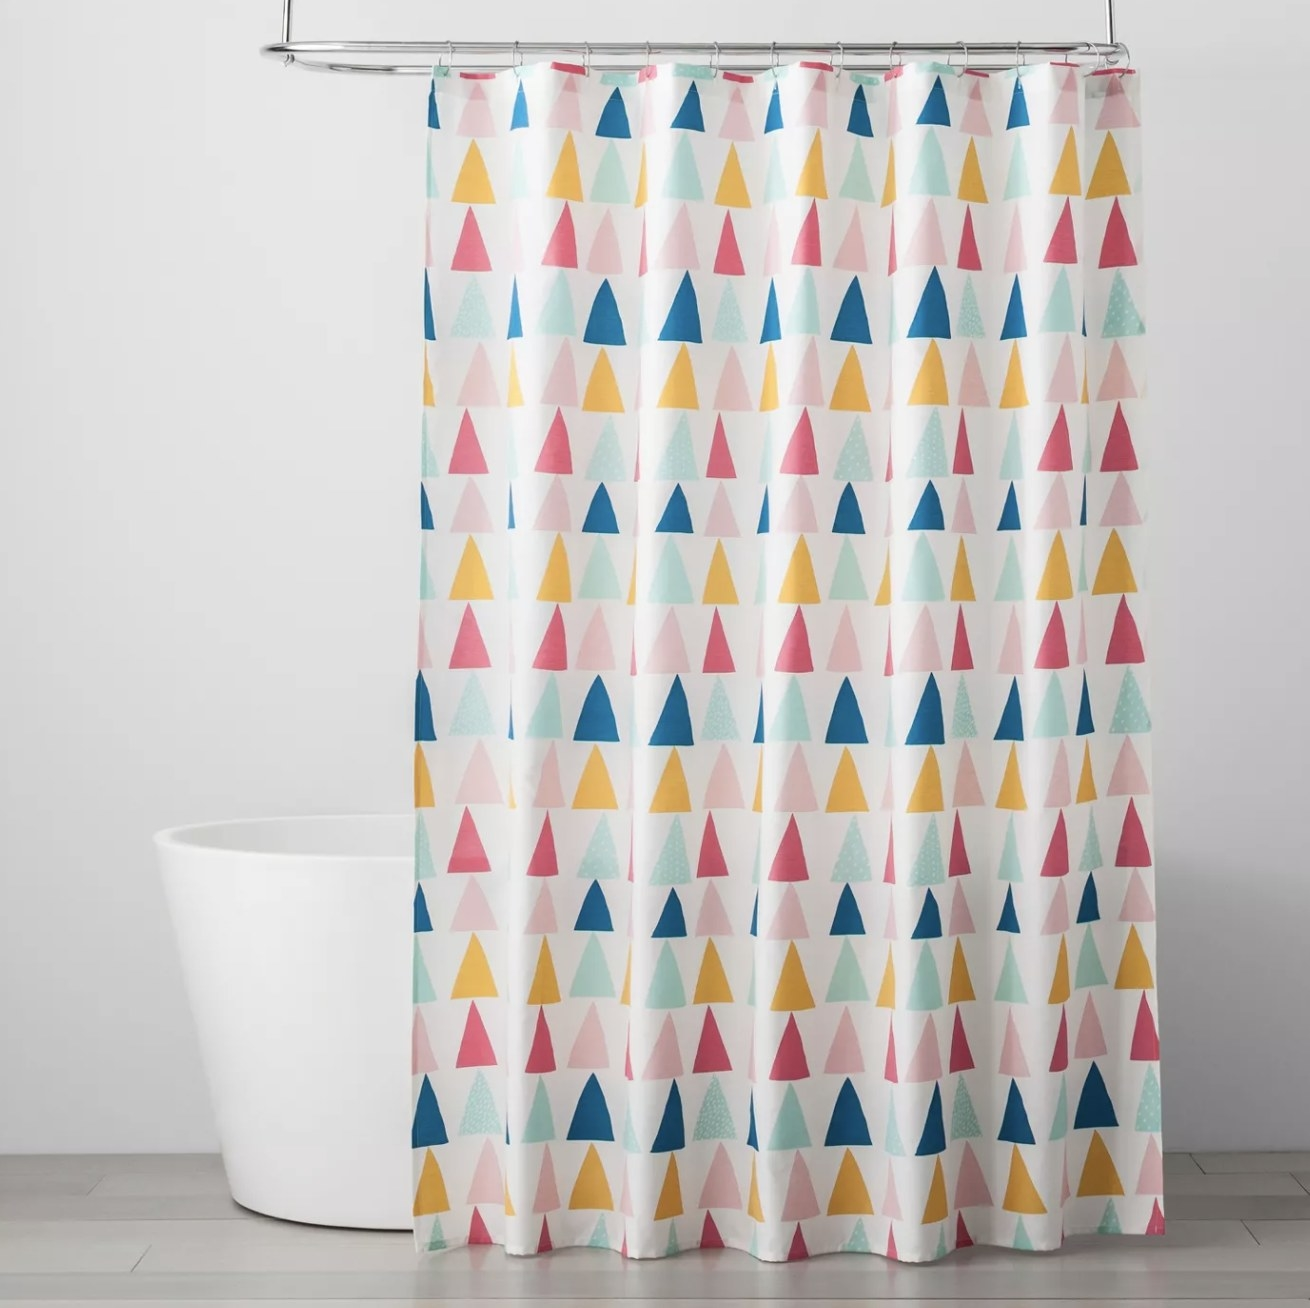 The shower curtain with colorful triangles throughout